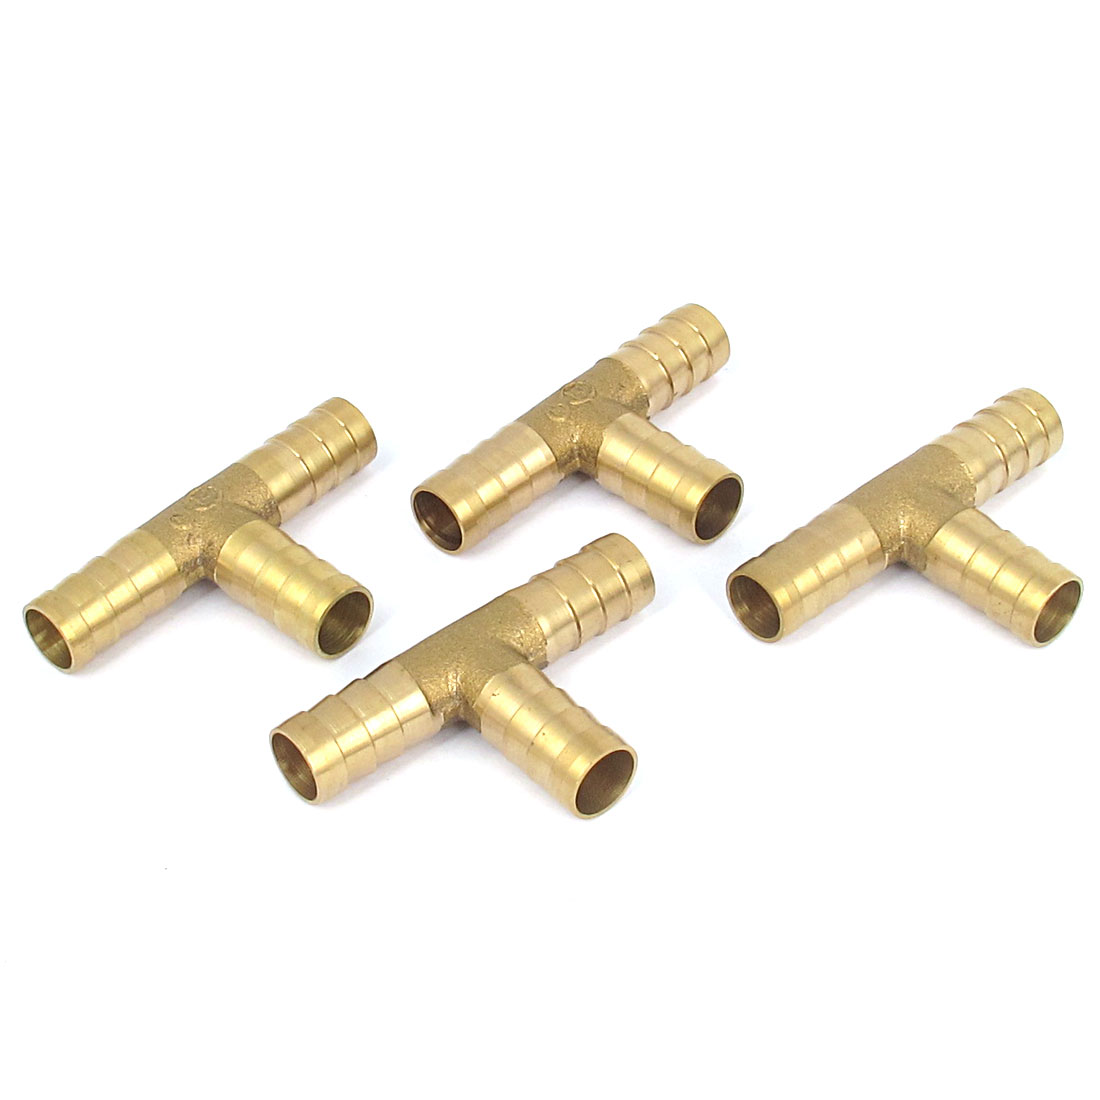 4 Pcs Brass T-Shape 3 Ways Hose Barb Fitting Adapter Coupler Connector 10mm Dia